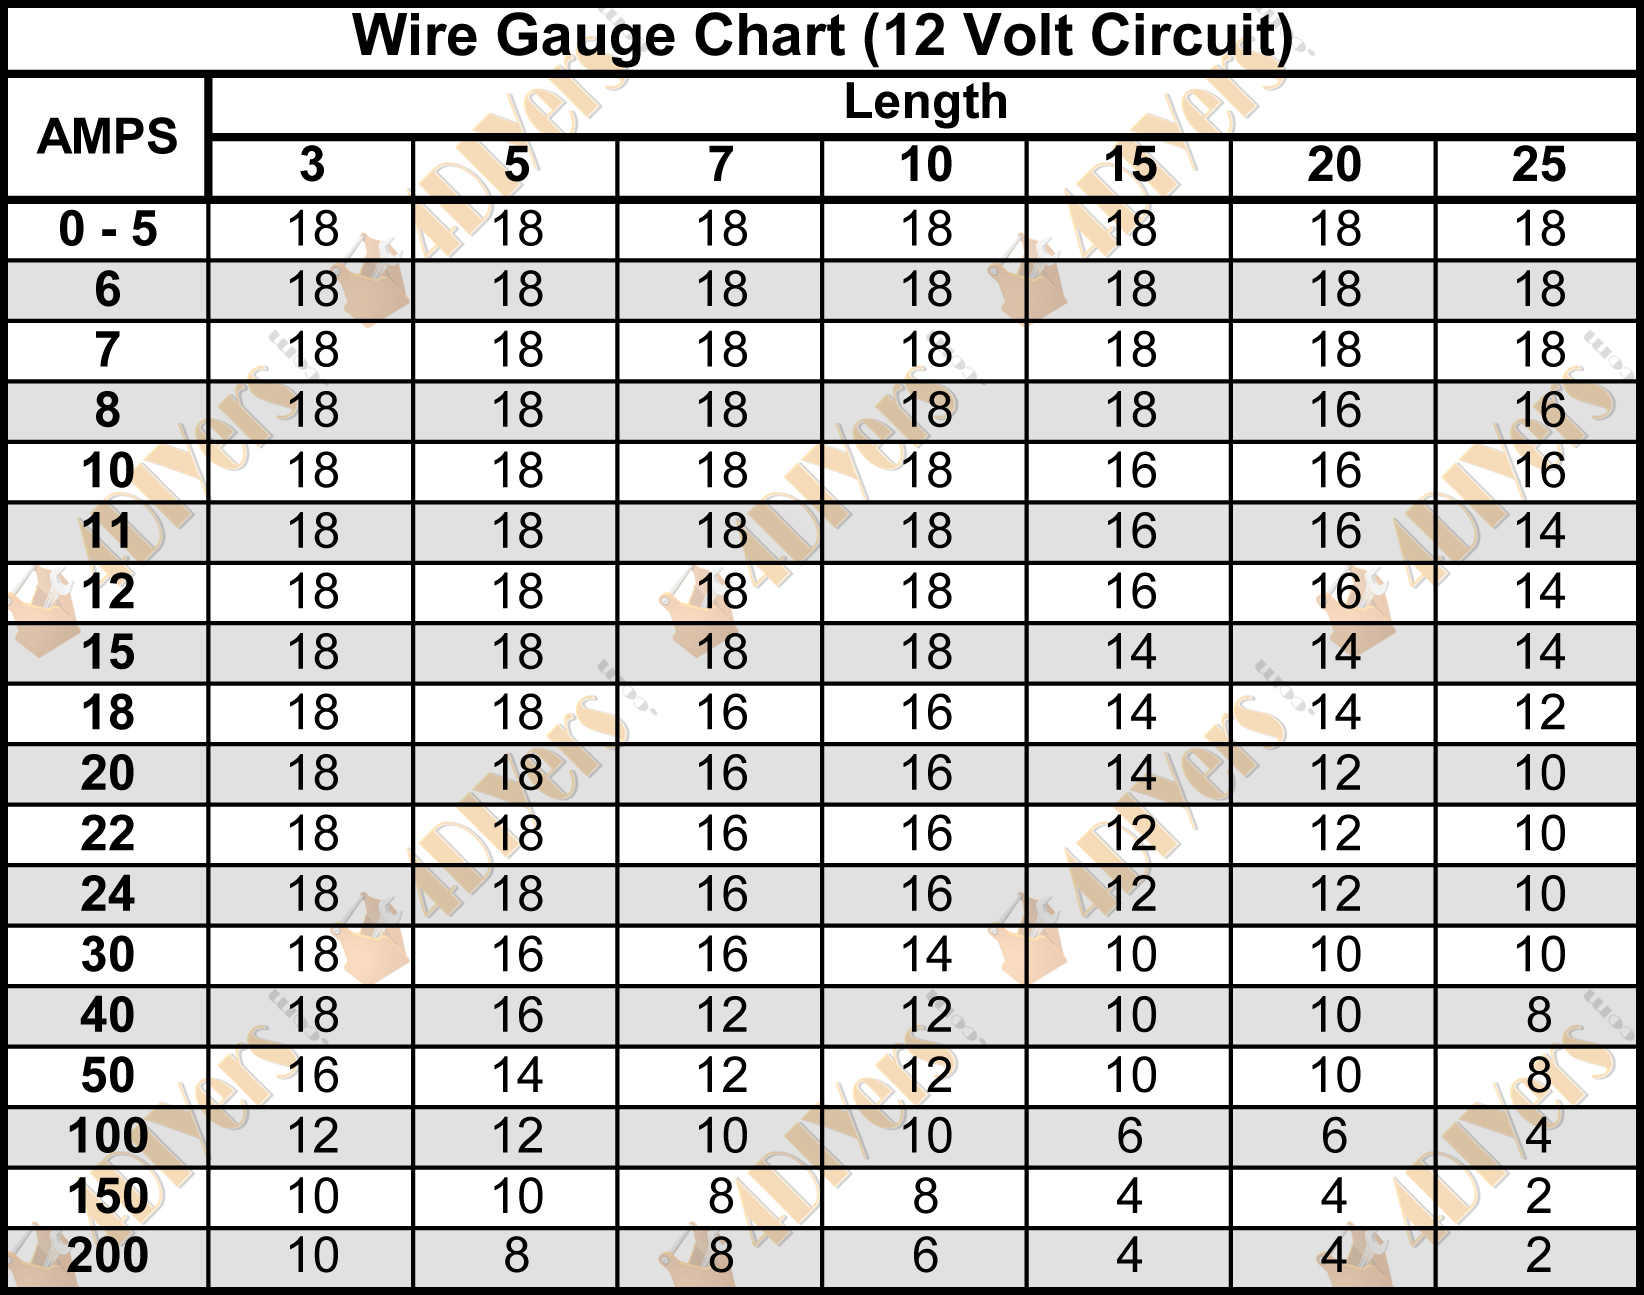 Amazing 12v Wire Gauge Chart Amps Composition - Electrical Diagram ...